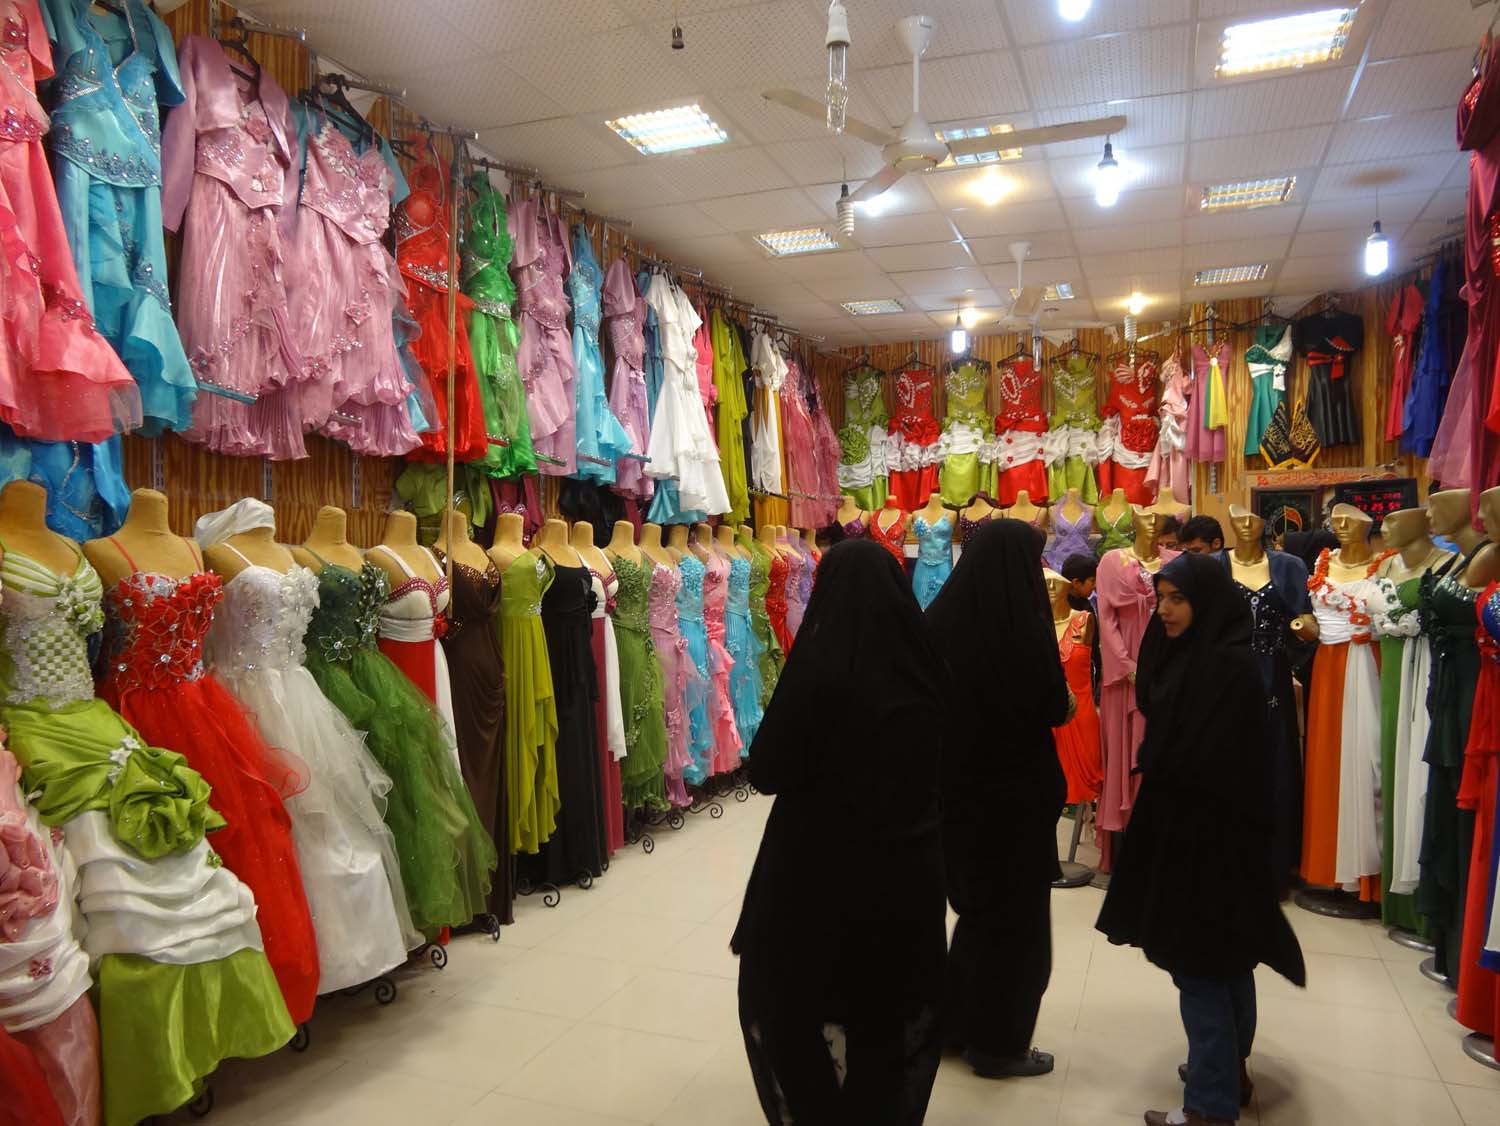 chador or sexy, colourfull dress?